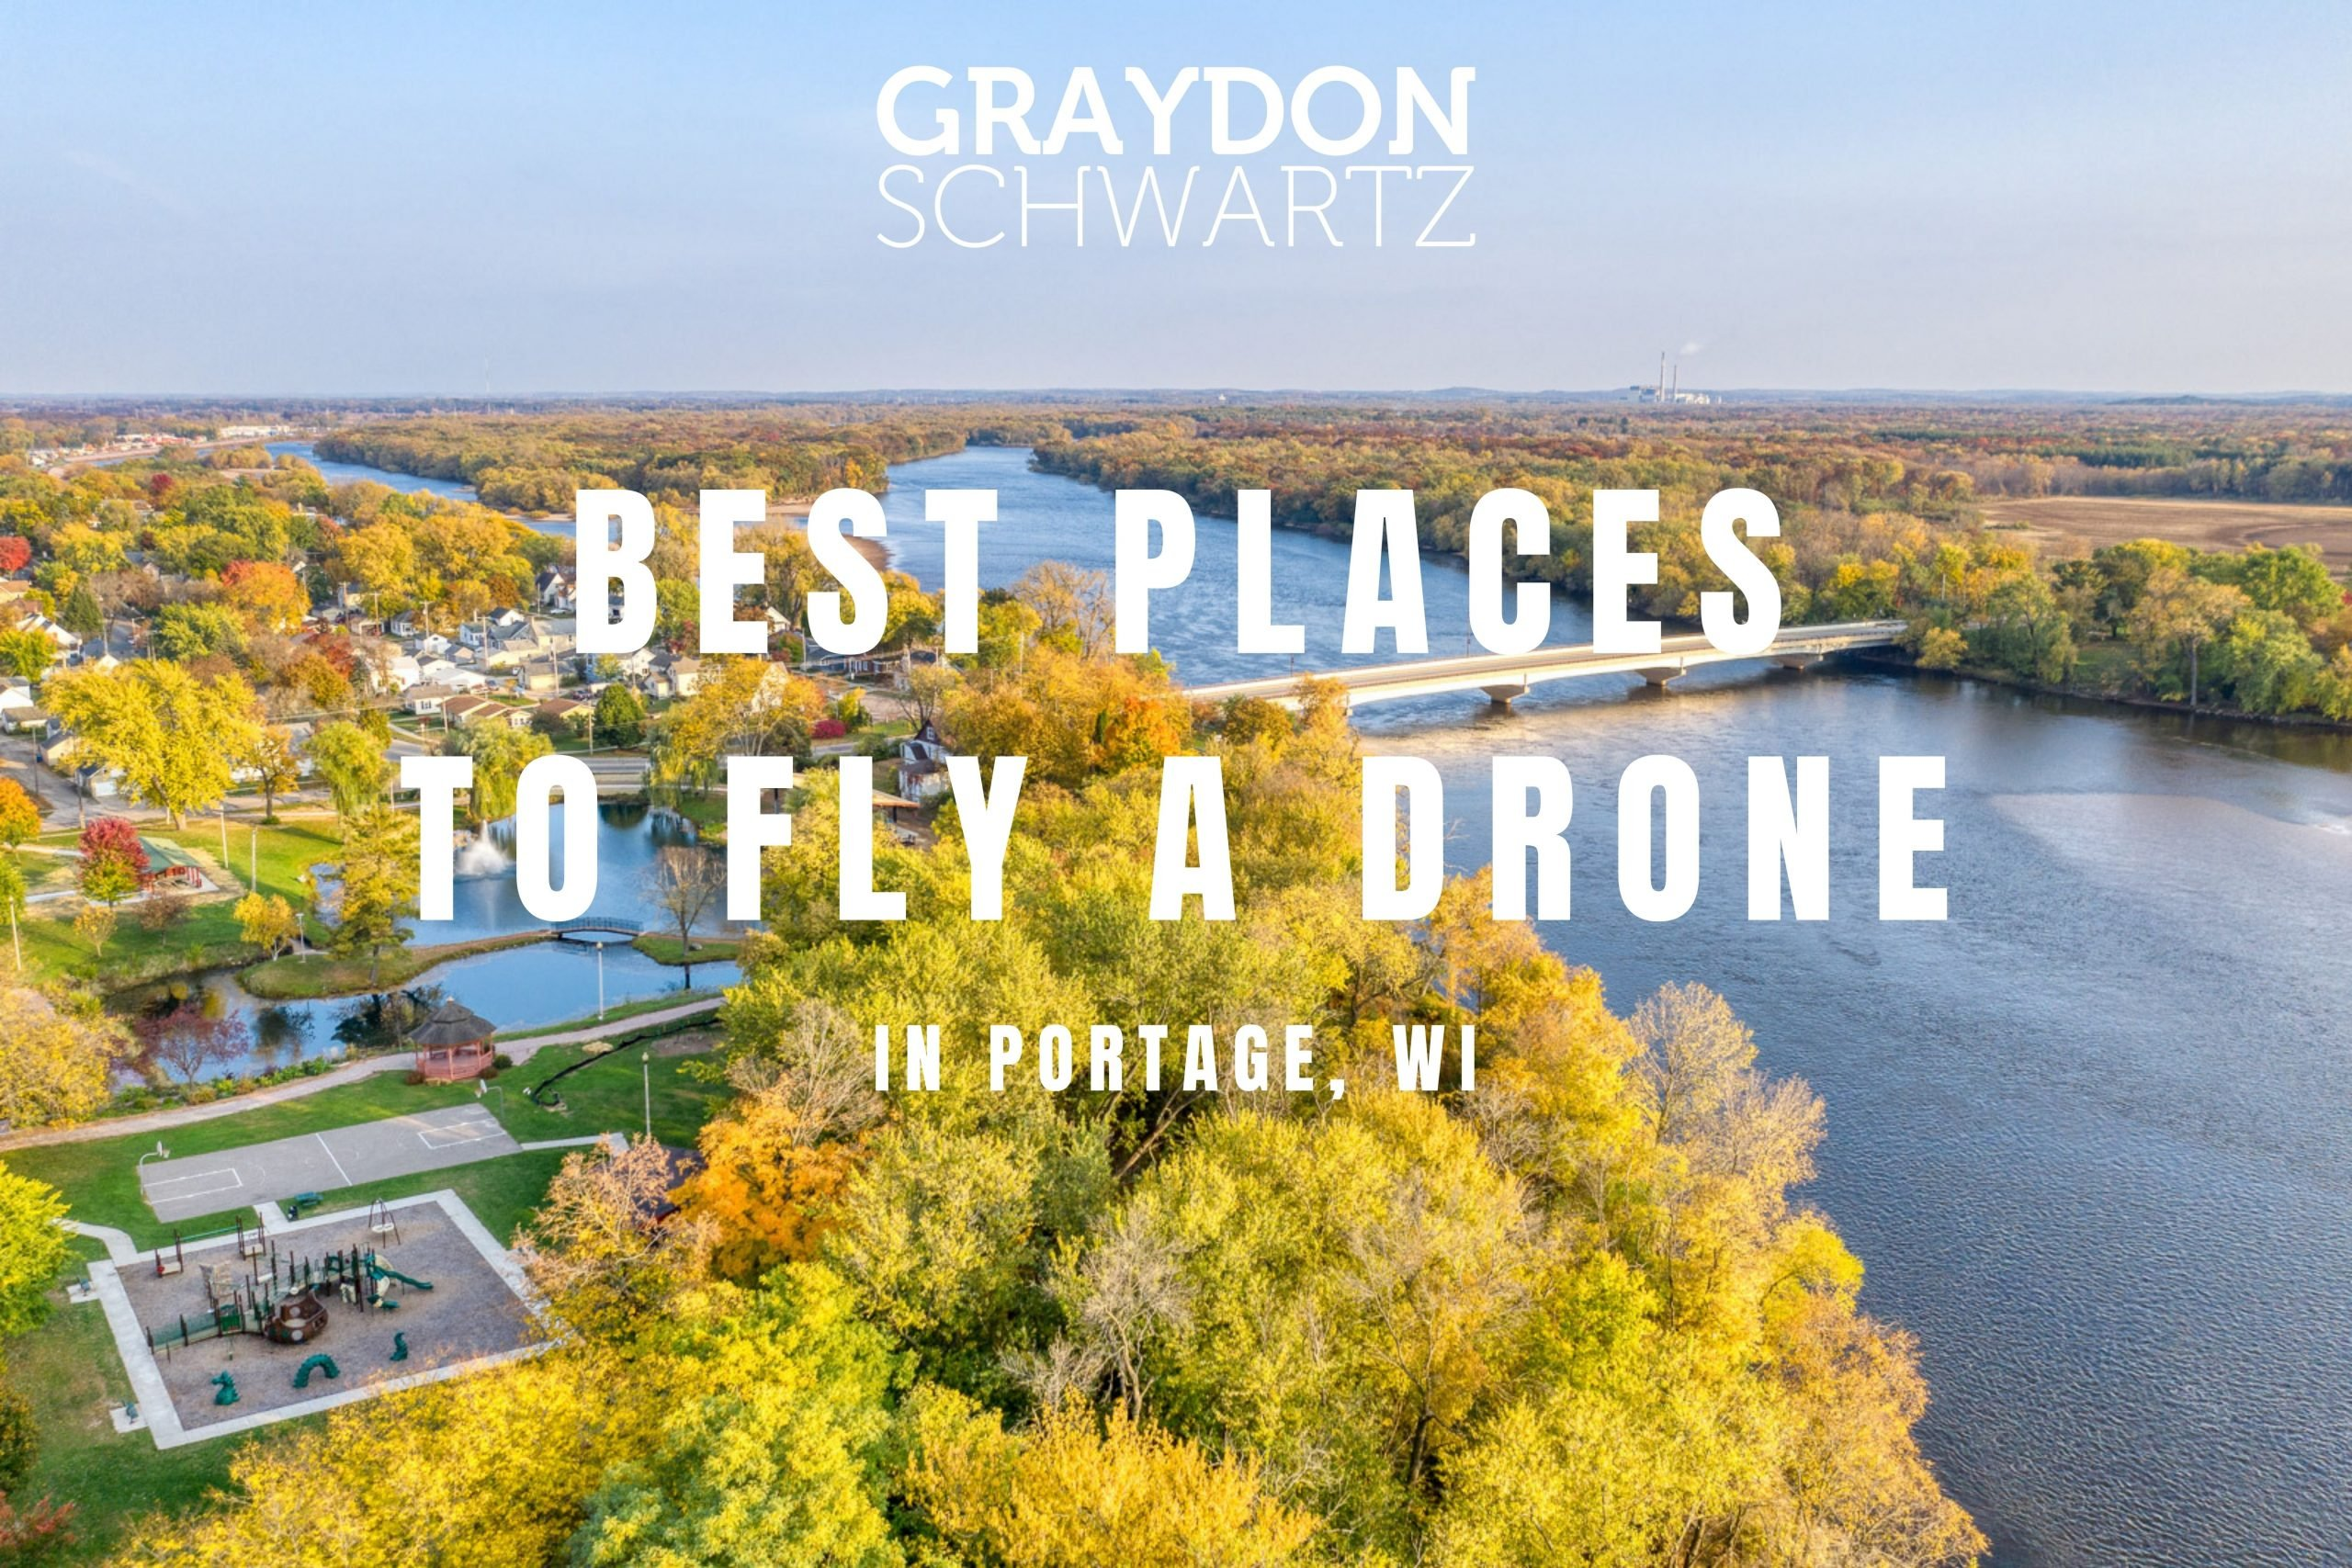 The 5 Best Places to Fly a Drone in Portage, Wisconsin